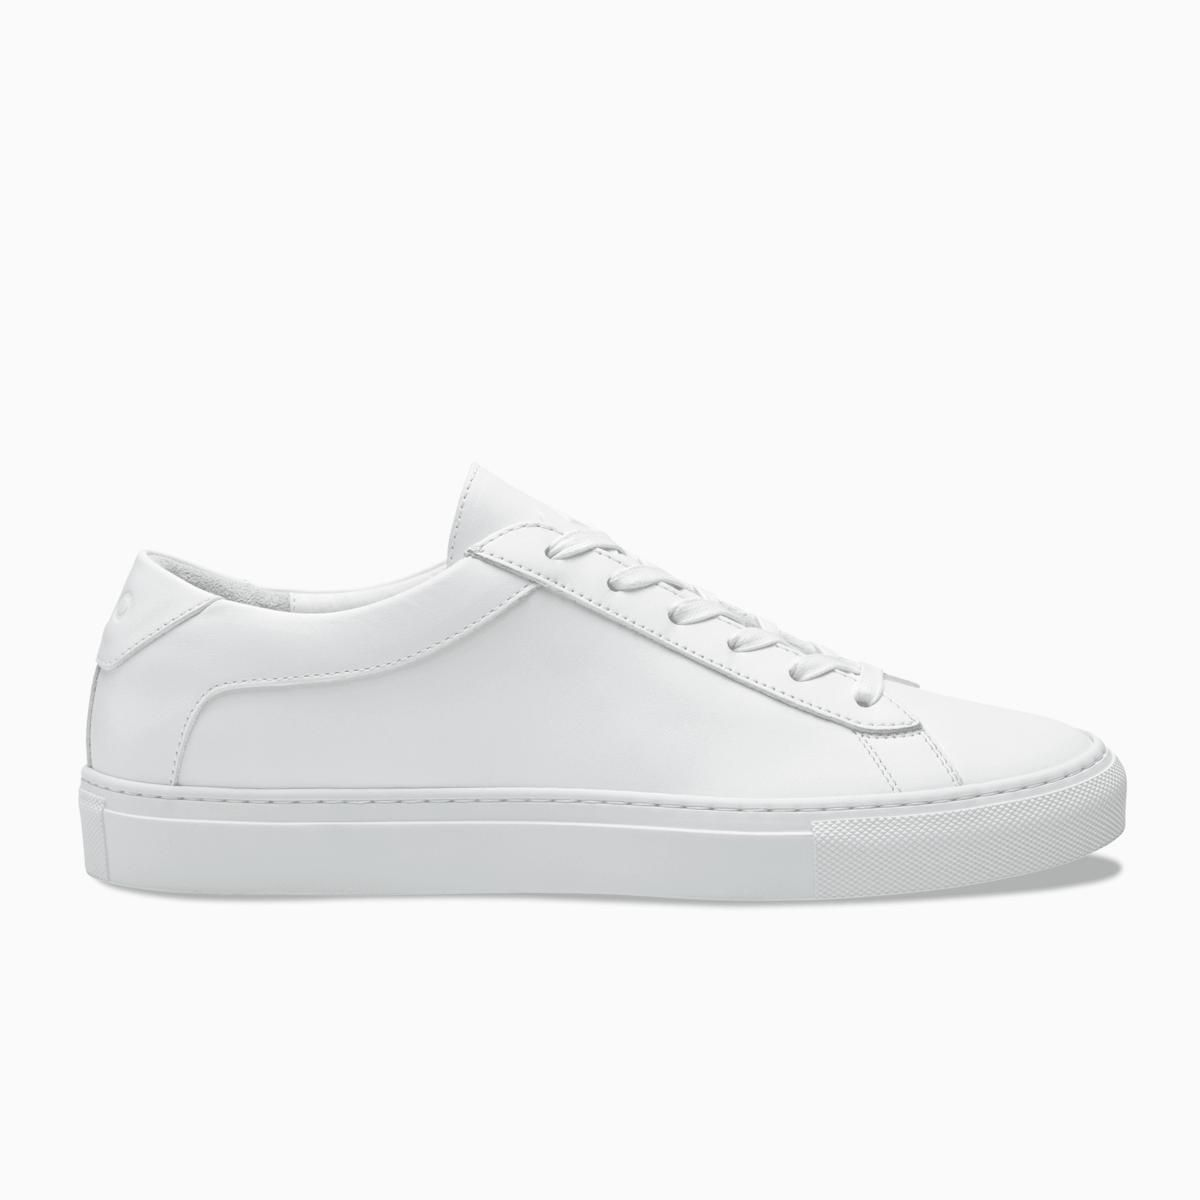 Capri Triple White Koio koio.co $248.00 SHOP NOW Perfectly sleek and buttery soft, this white sneaker comes with an ultra-comfortable and bouncy removable insole.